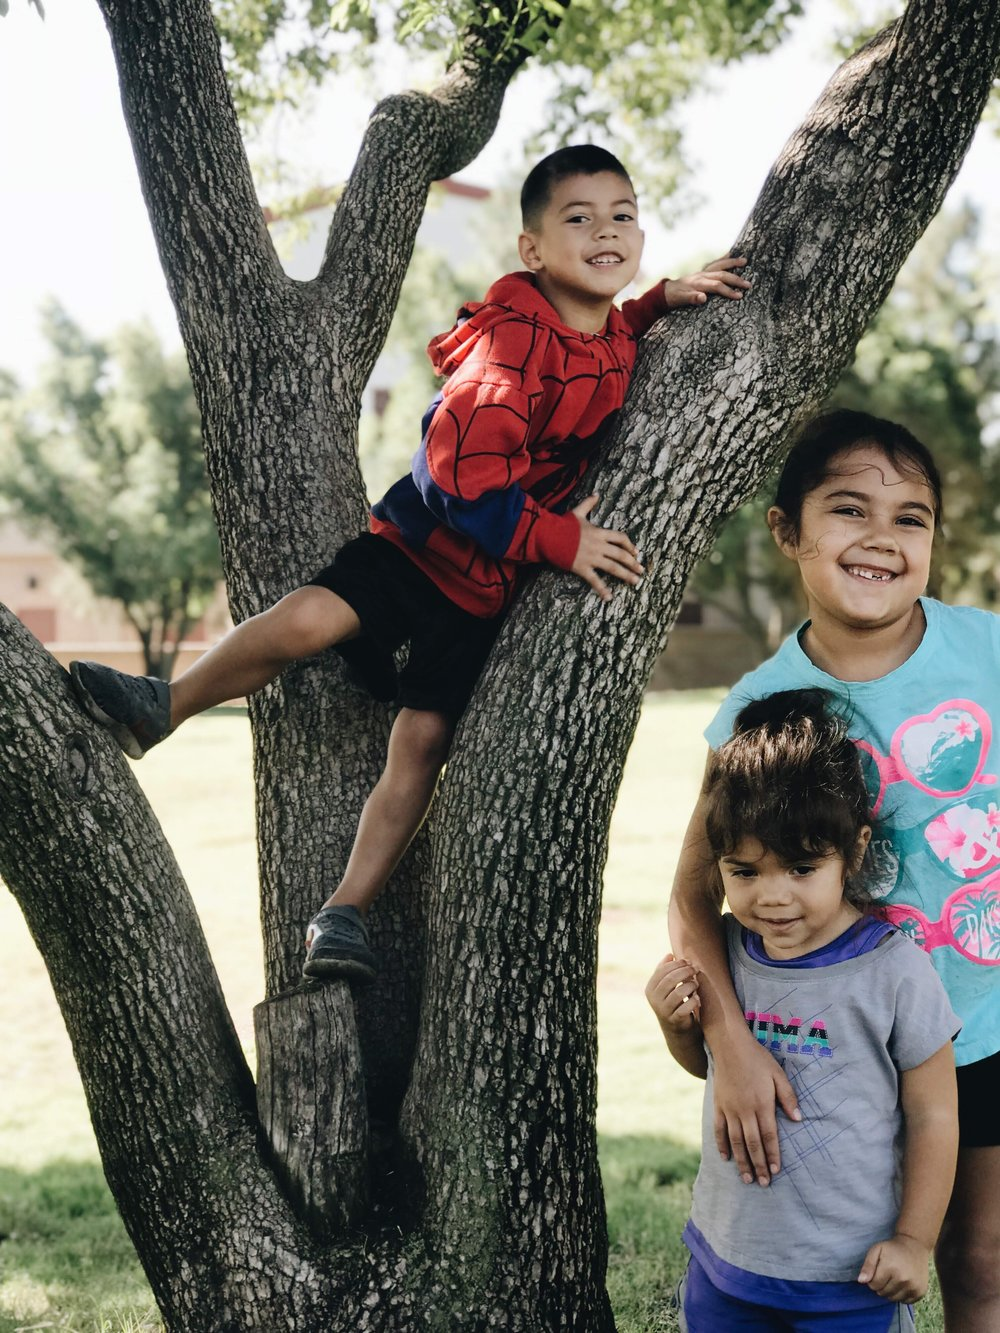 The kids actually navigated away from the park to climb trees! We were literally at the park this day for hours because of the nice weather!